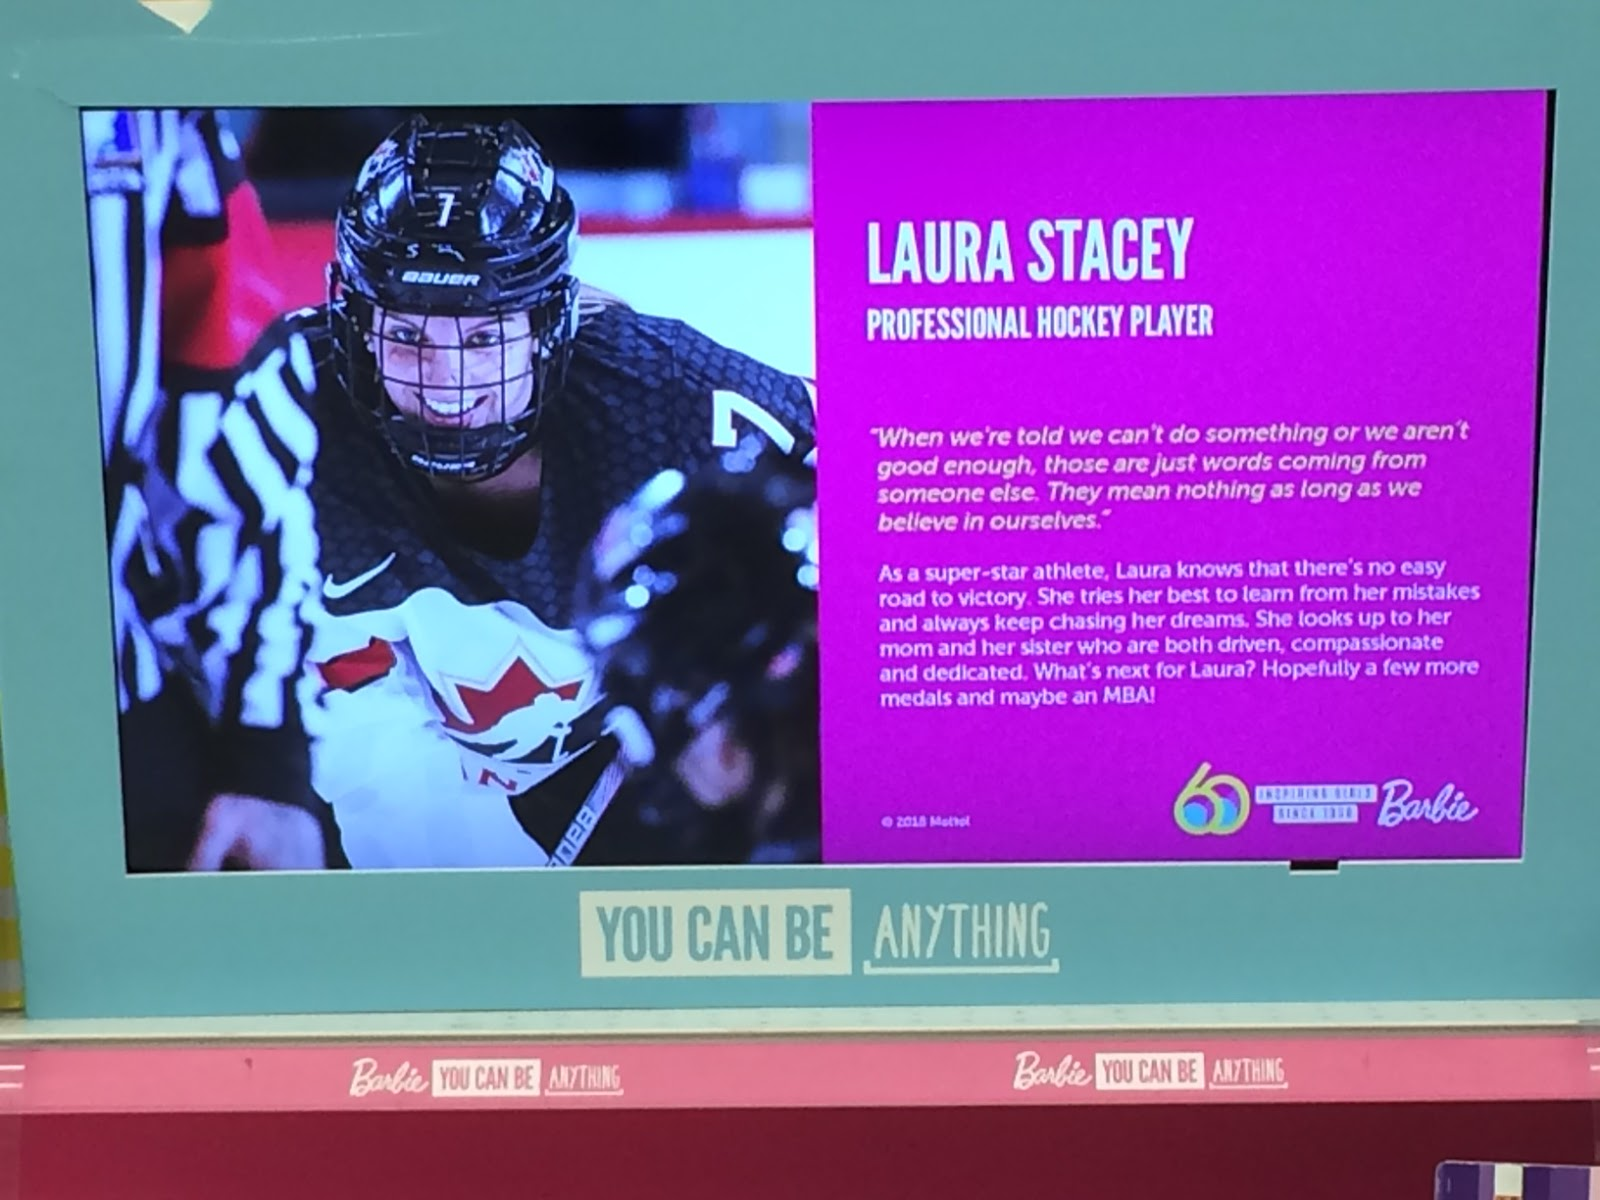 e8d4beefc6f02 Laura Stacey is one of the selected role models that Mattel has recruited  for in-store marketing, and seeing the Markham Thunder and Team Canada  forward on ...